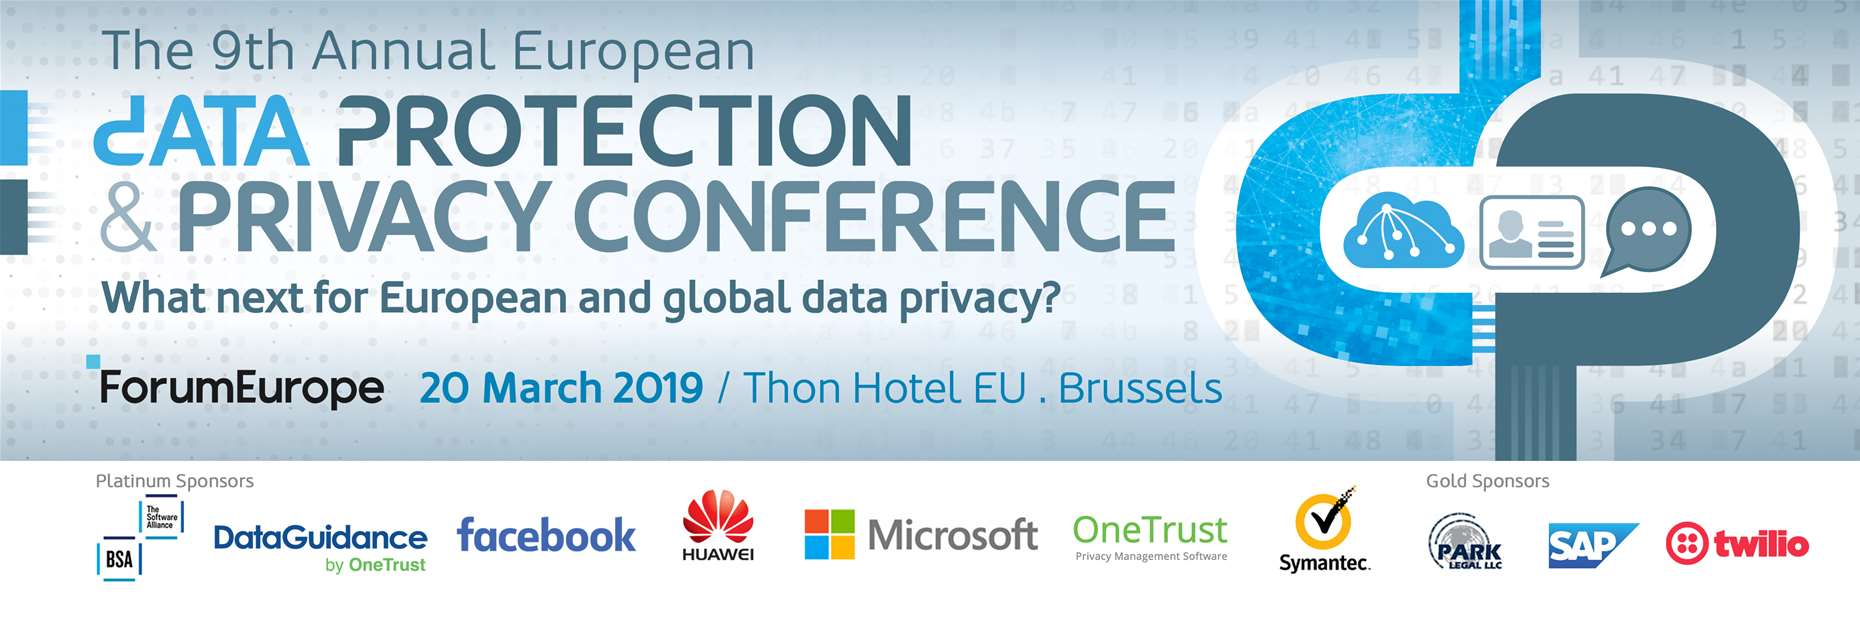 The 9th Annual Data Protection & Privacy Conference